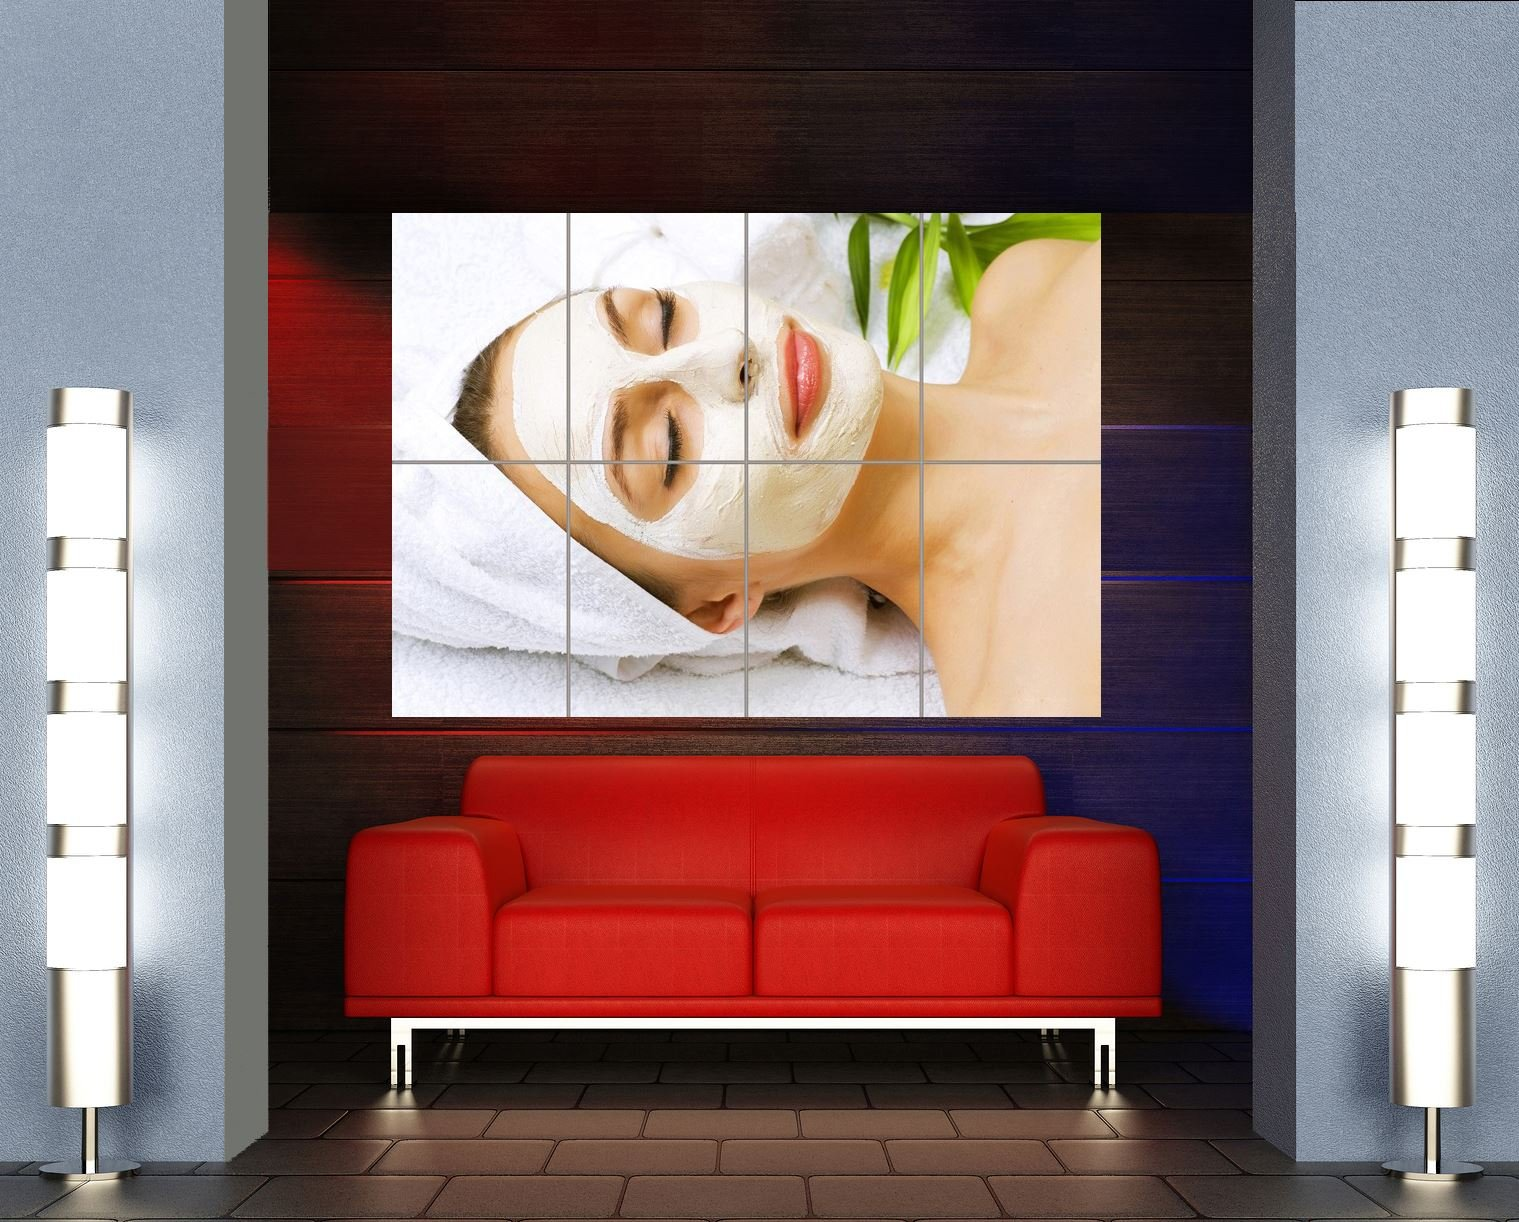 Doppelganger33LTD SALON SPA HEALTH BEAUTY FACIAL NEW GIANT WALL ART PRINT PICTURE POSTER OZ582